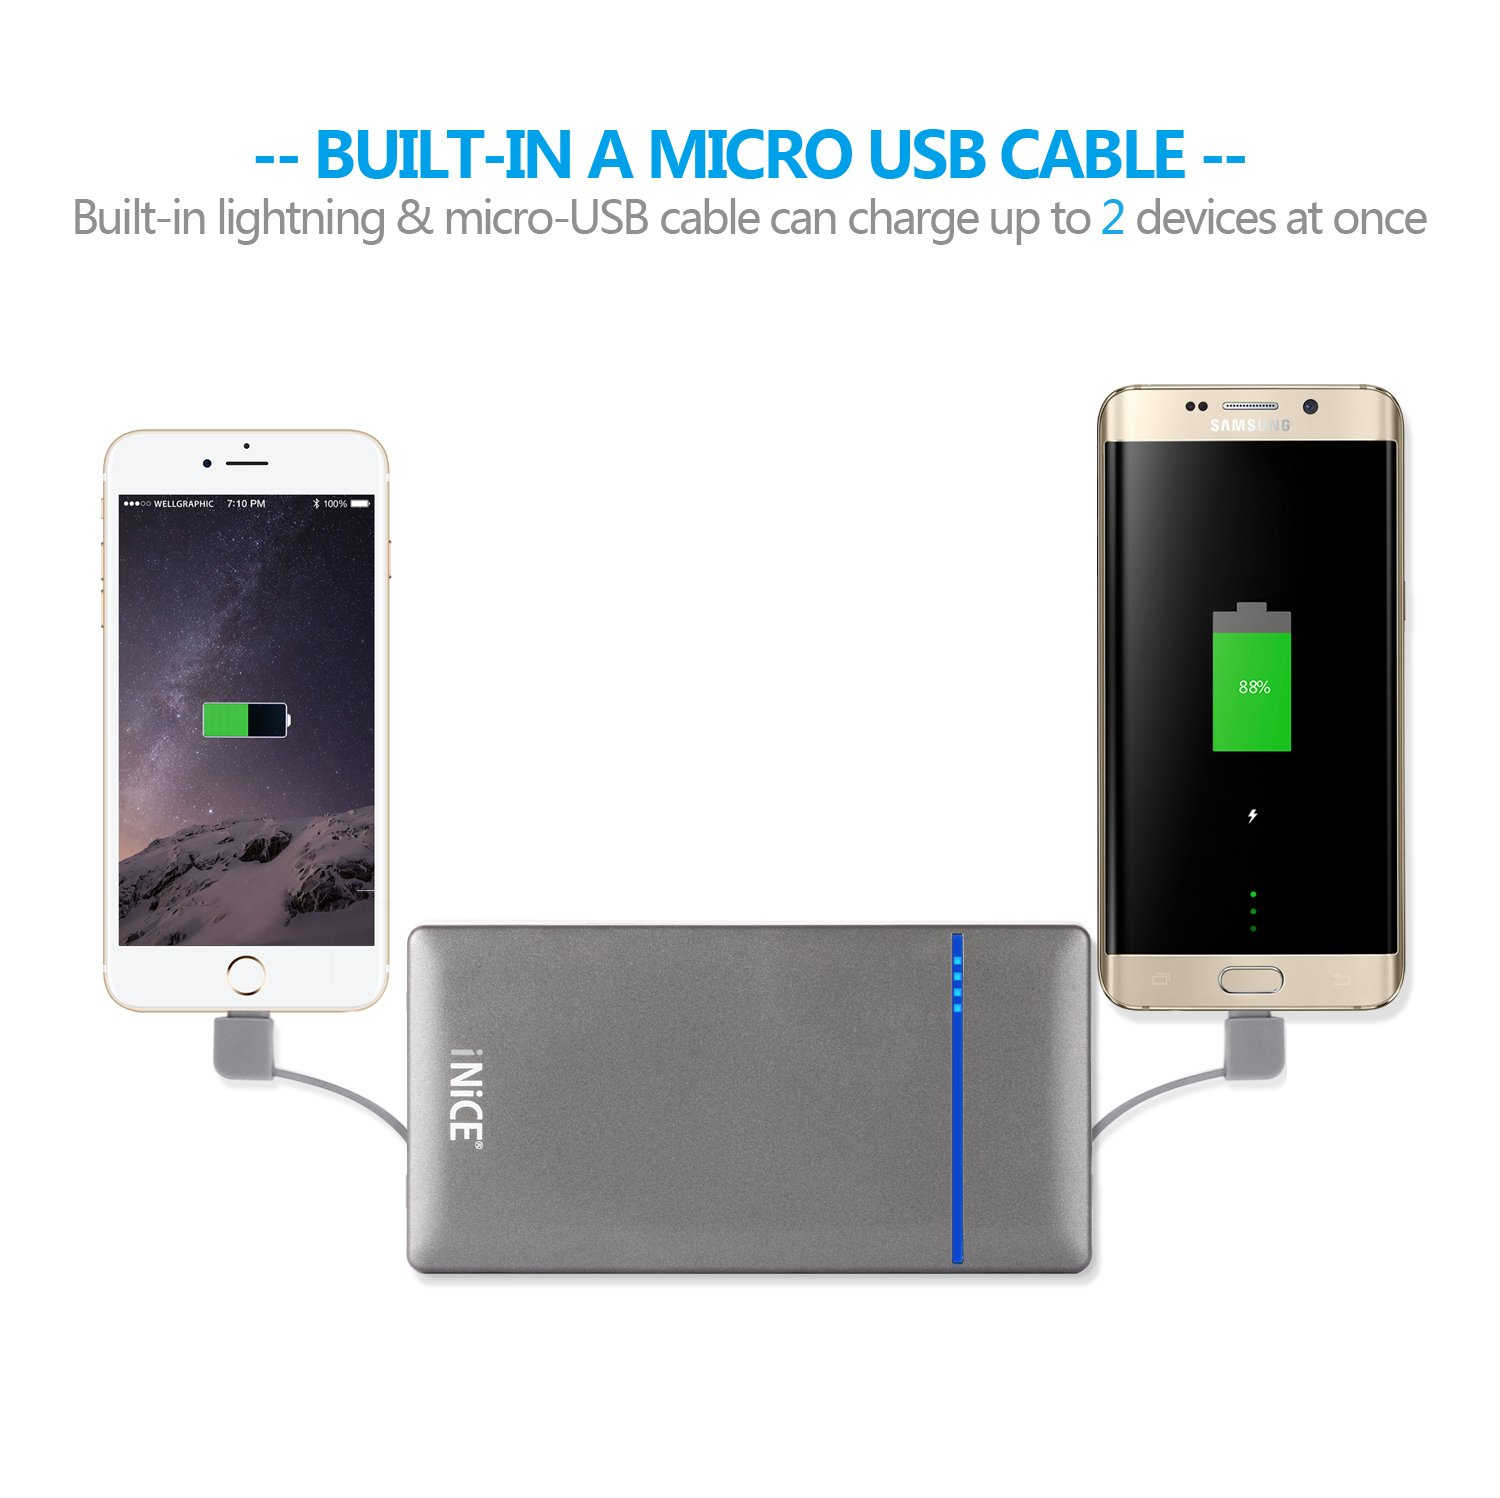 Inice Portable Bank 10000mah Power External Battery With Usb Cable Wiring Diagram5pin Micro Cableled Product On Built In Lightning Travel Charger For Iphone 7 7plus 6 6s Plus And